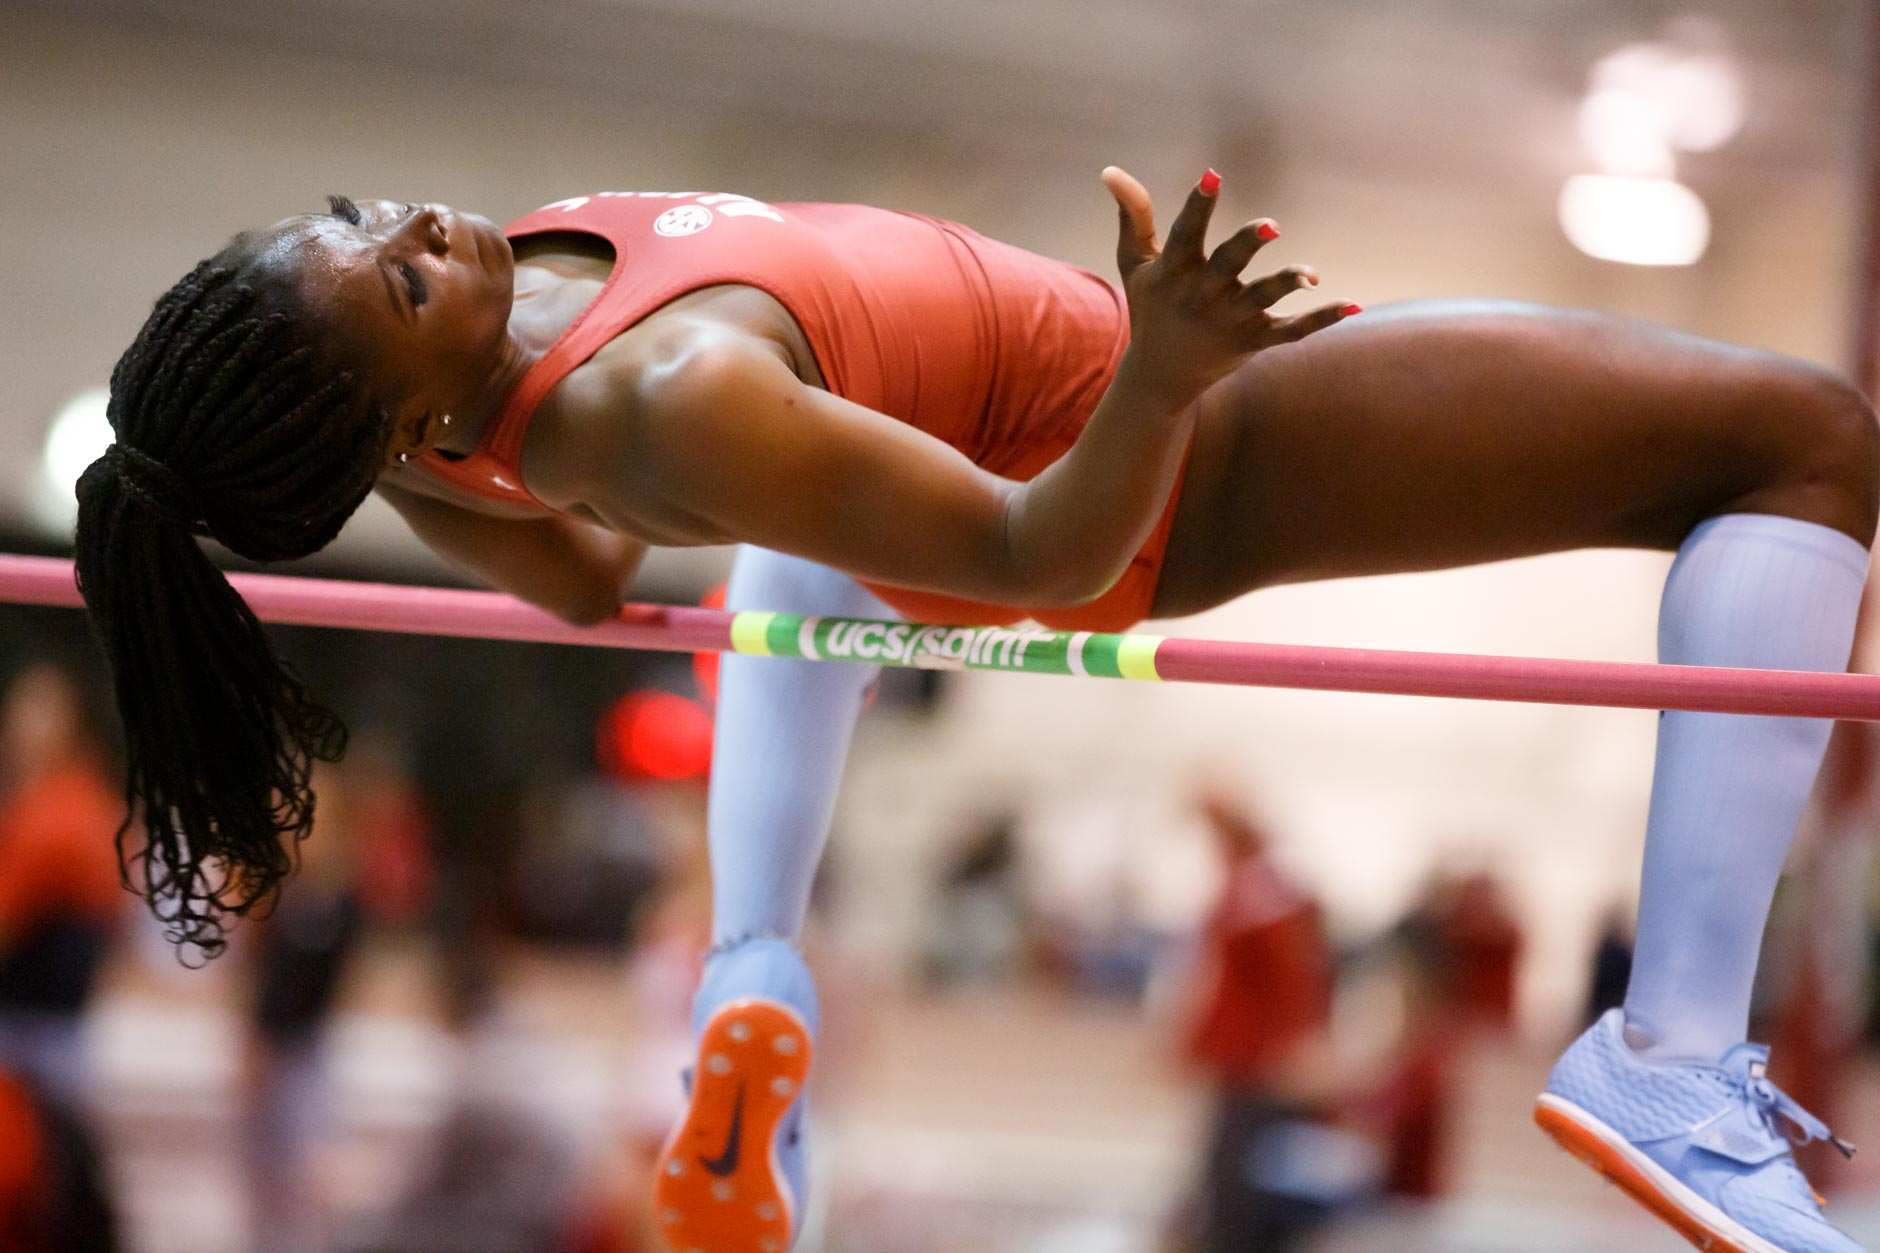 Alabama's Abigail Kwarteng competes in the high jump during the Indiana University Relays in Bloomington, Indiana on Friday, Jan. 31, 2020. (Photo by James Brosher)